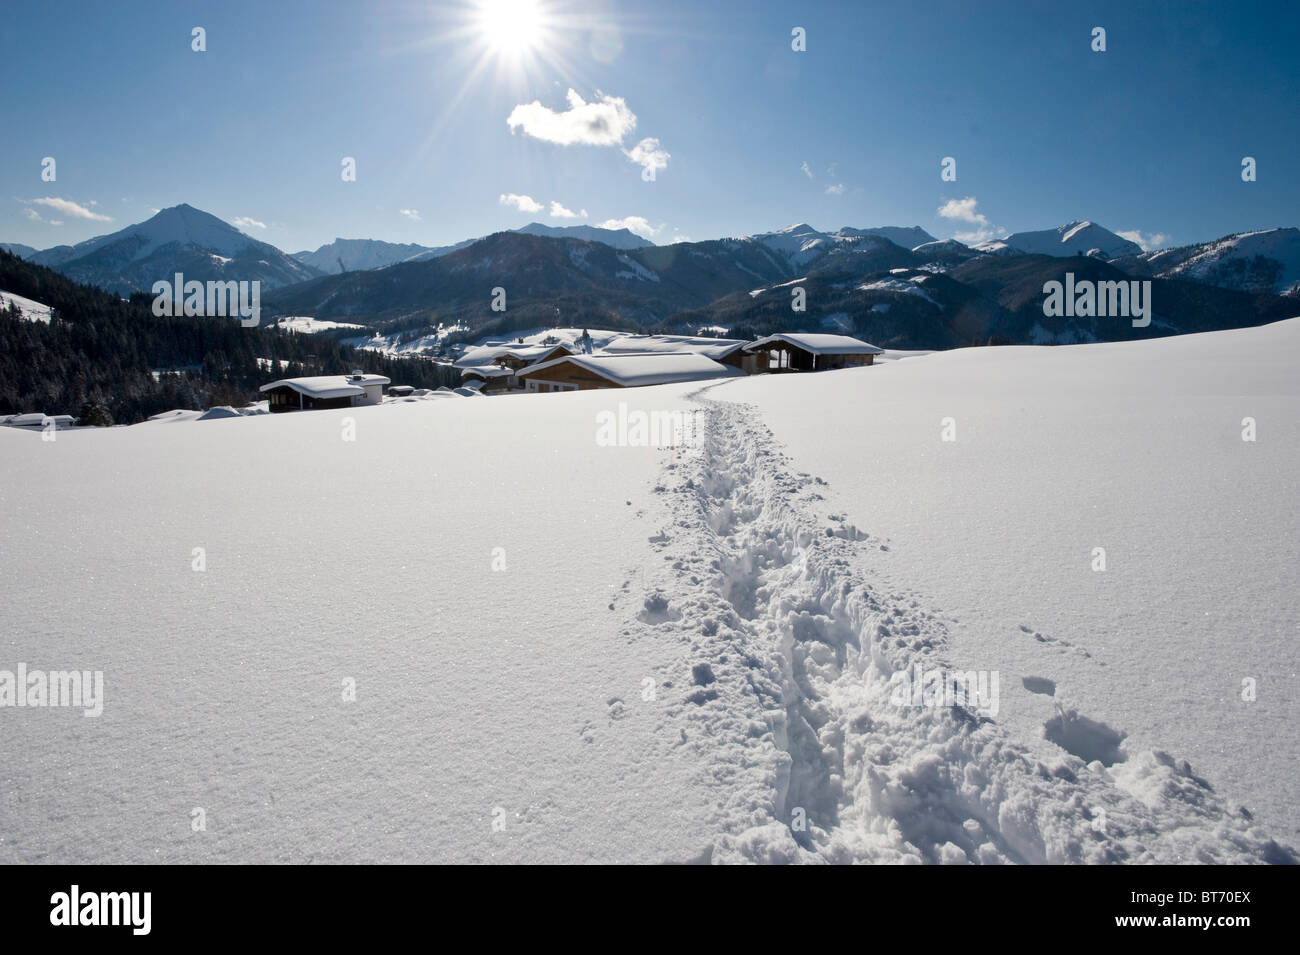 Tracks in a winter landscape, Achenkirch, Tyrol, Austria - Stock Image